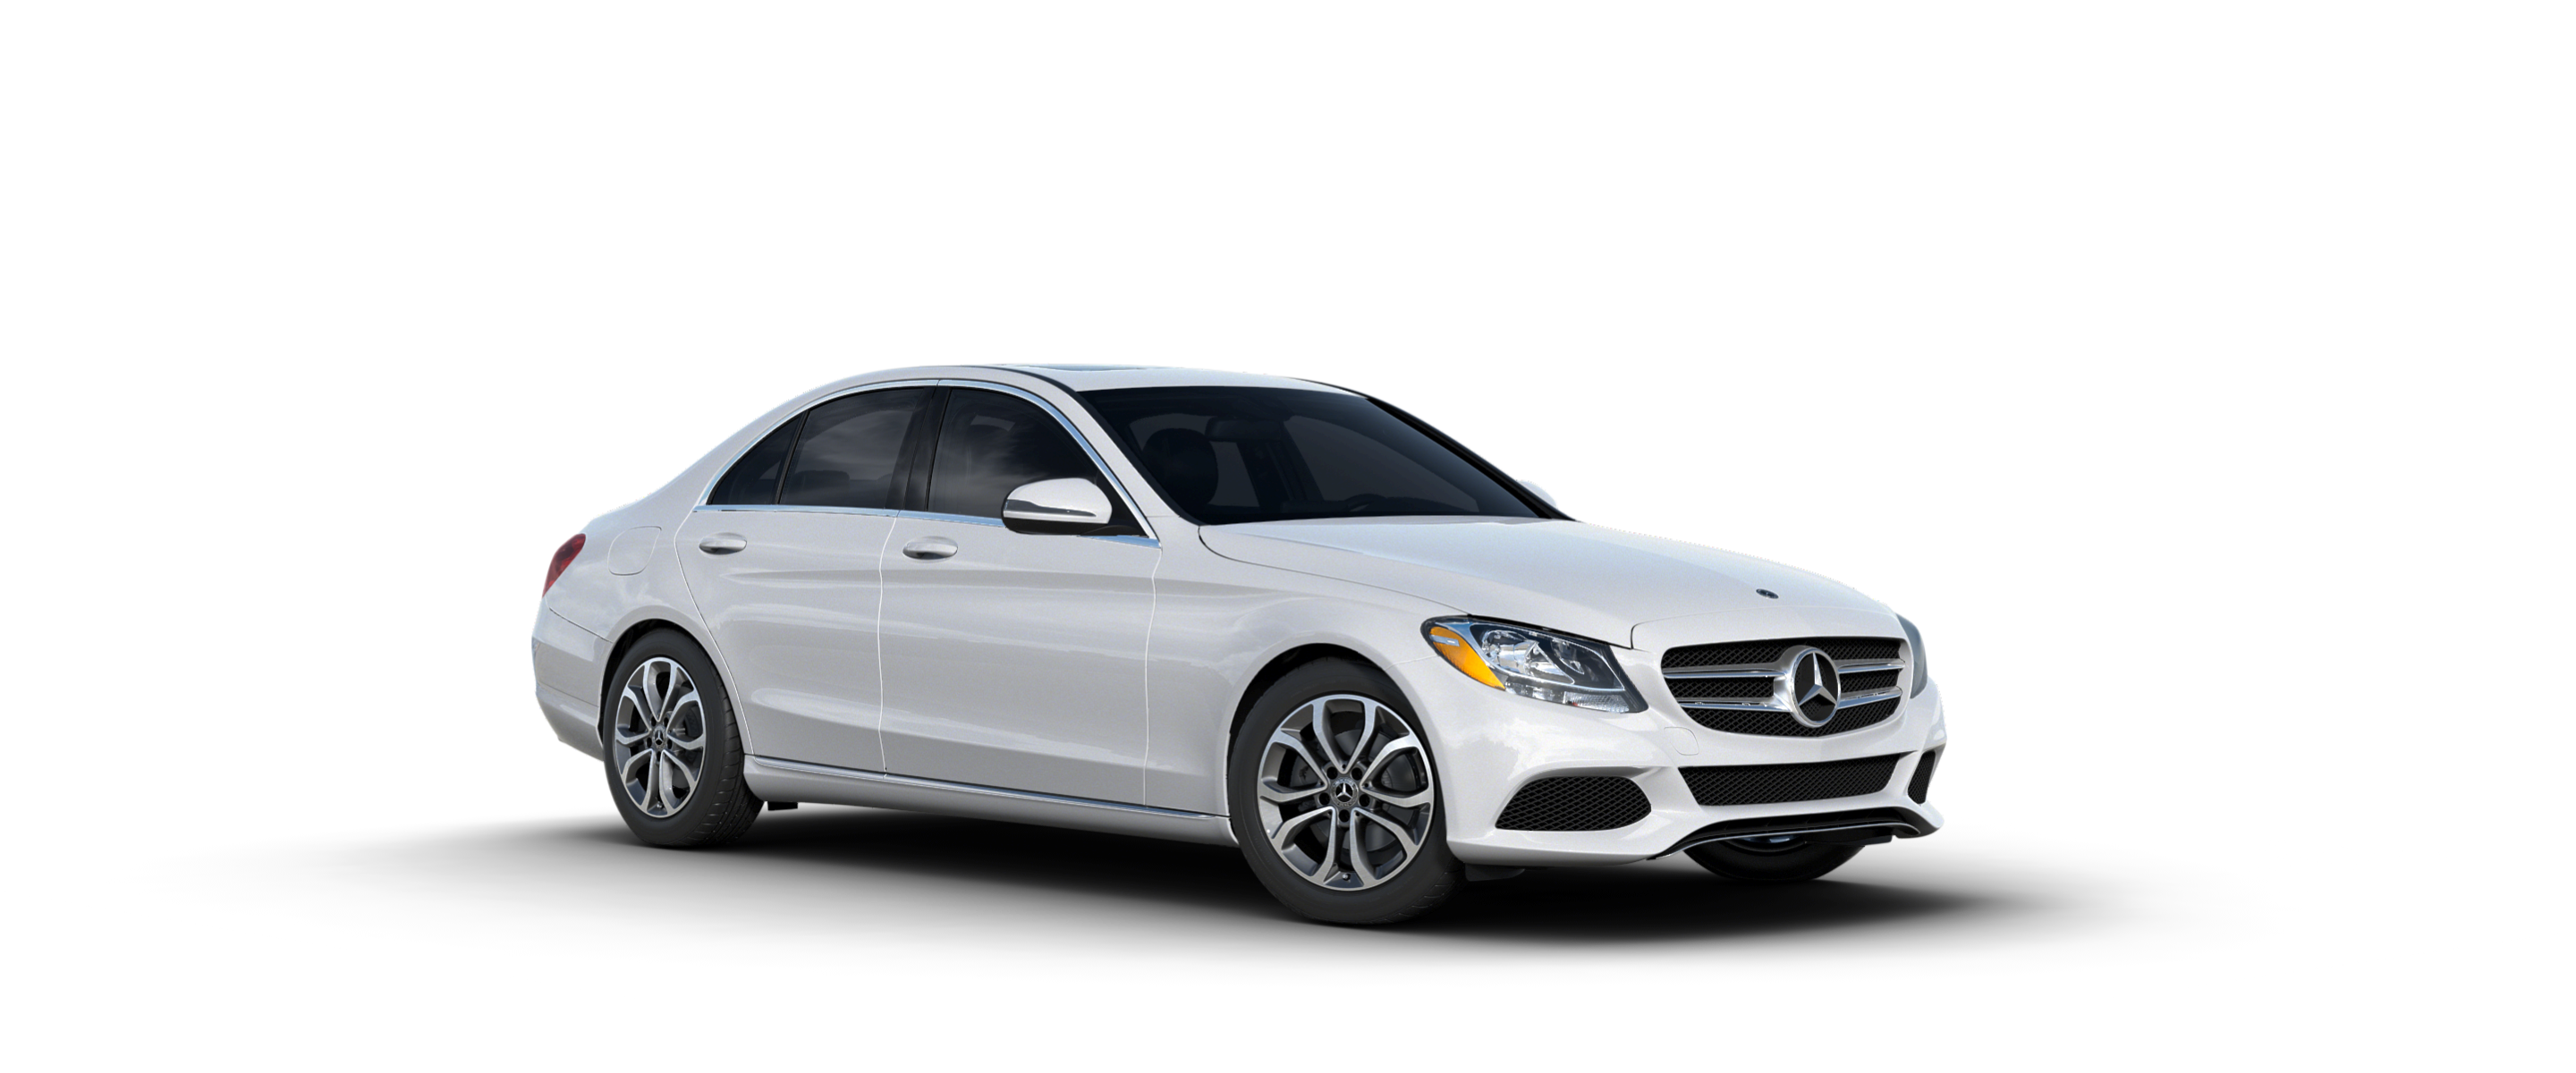 Color options for the 2018 mercedes benz c class sedan for Mercedes benz options